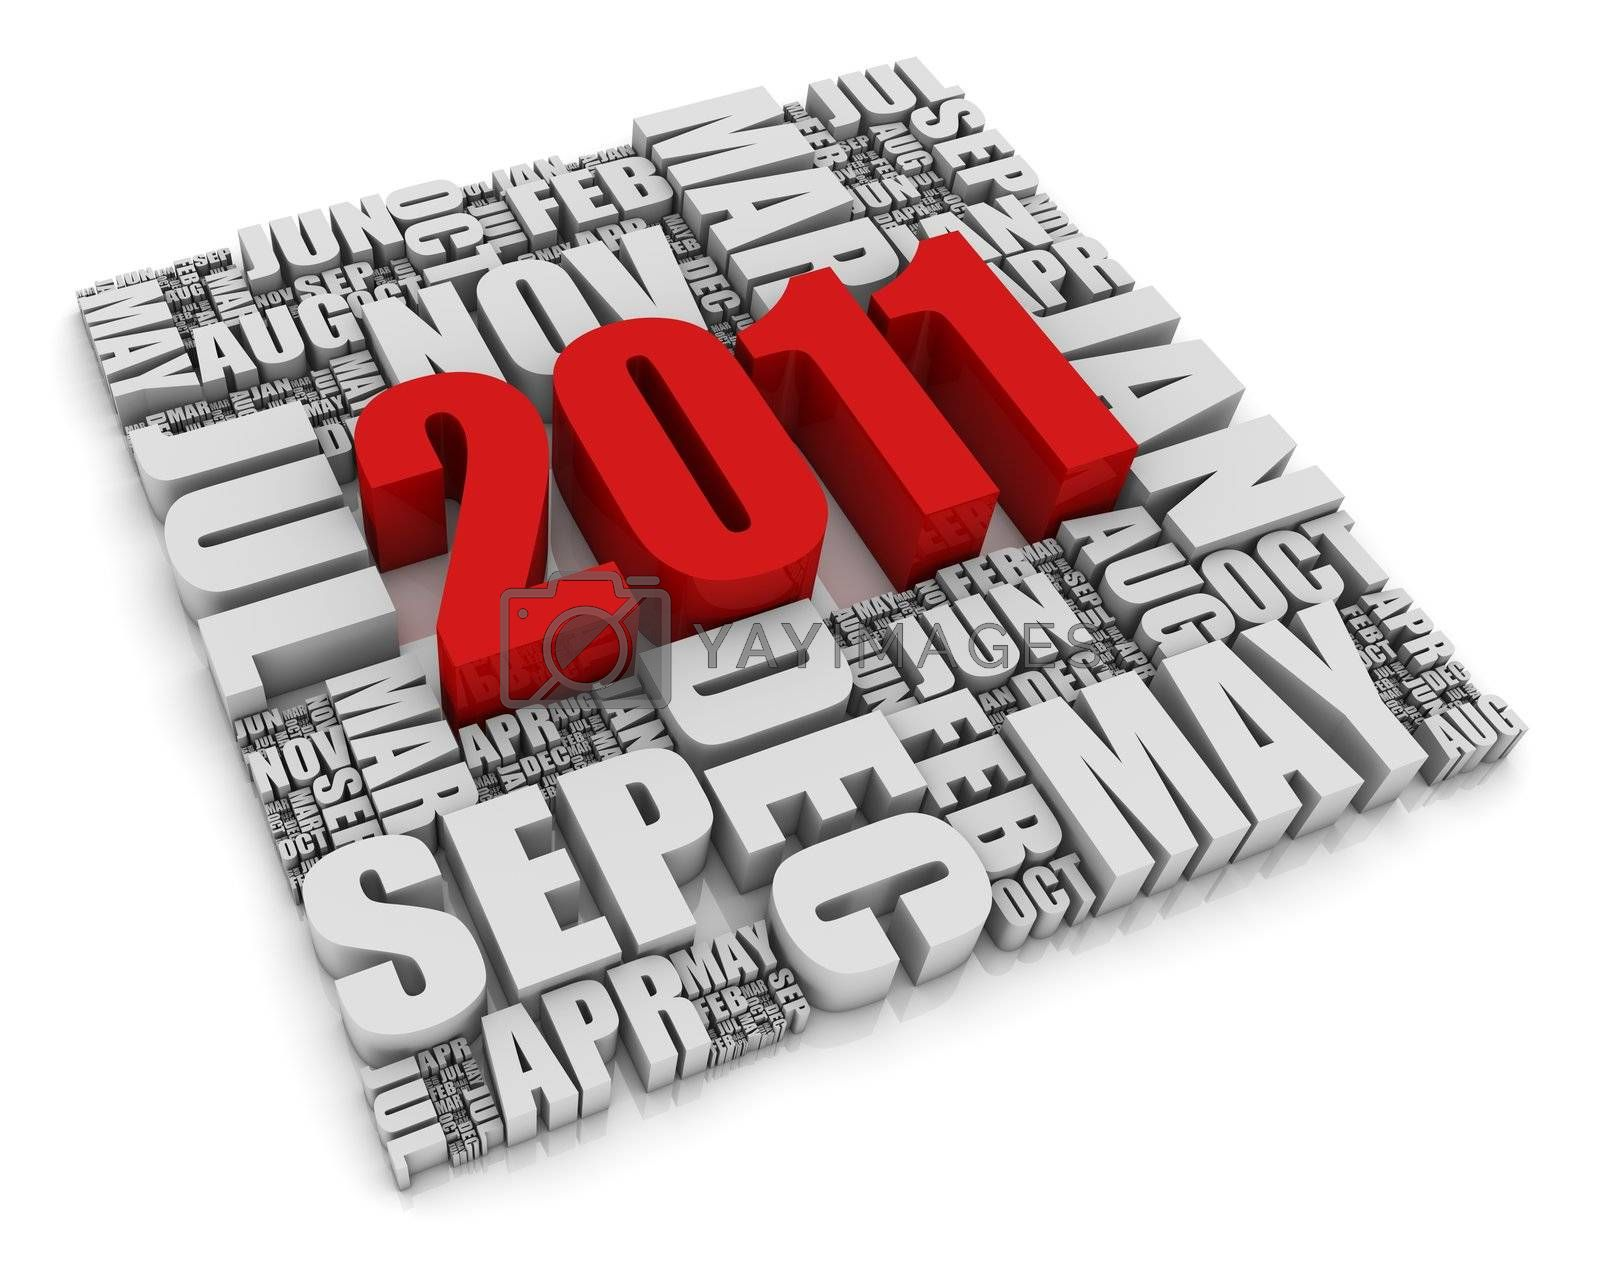 3D text representing the year 2011 and the twelve months. Part of a series of calendar concepts.